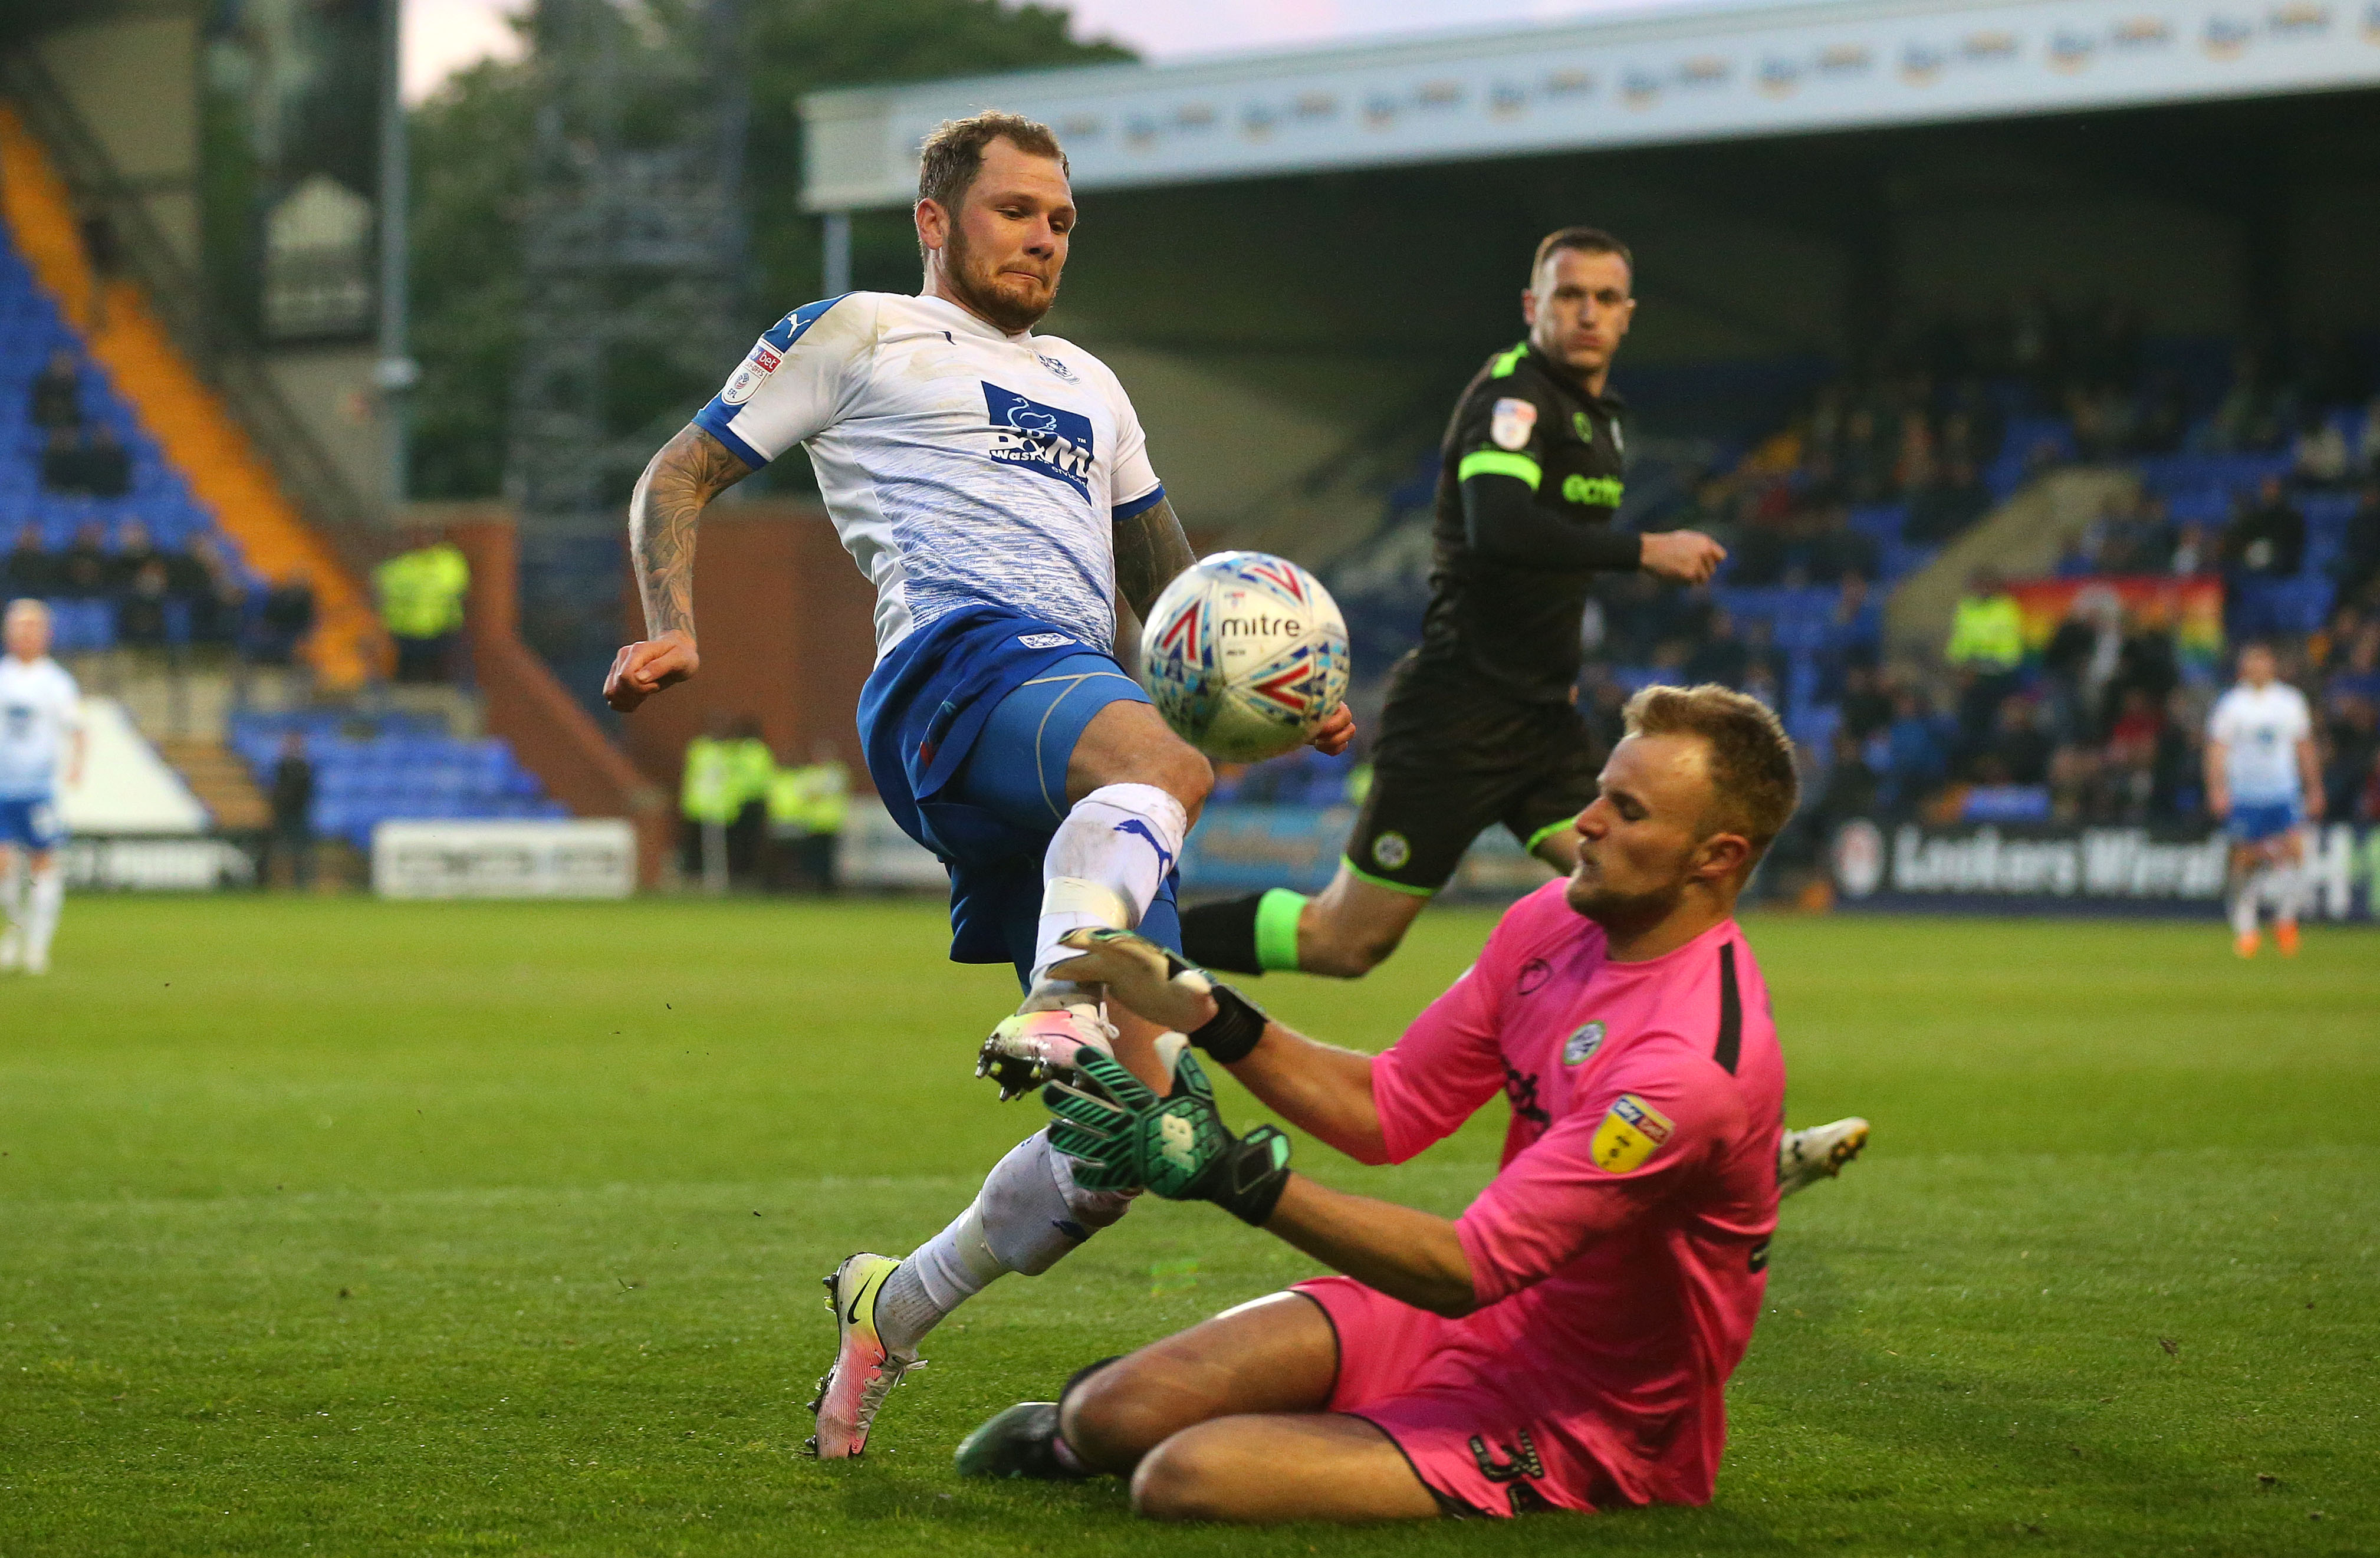 Tranmere Rovers v Forest Green - Sky Bet League Two Play-off Semi Final: First Leg